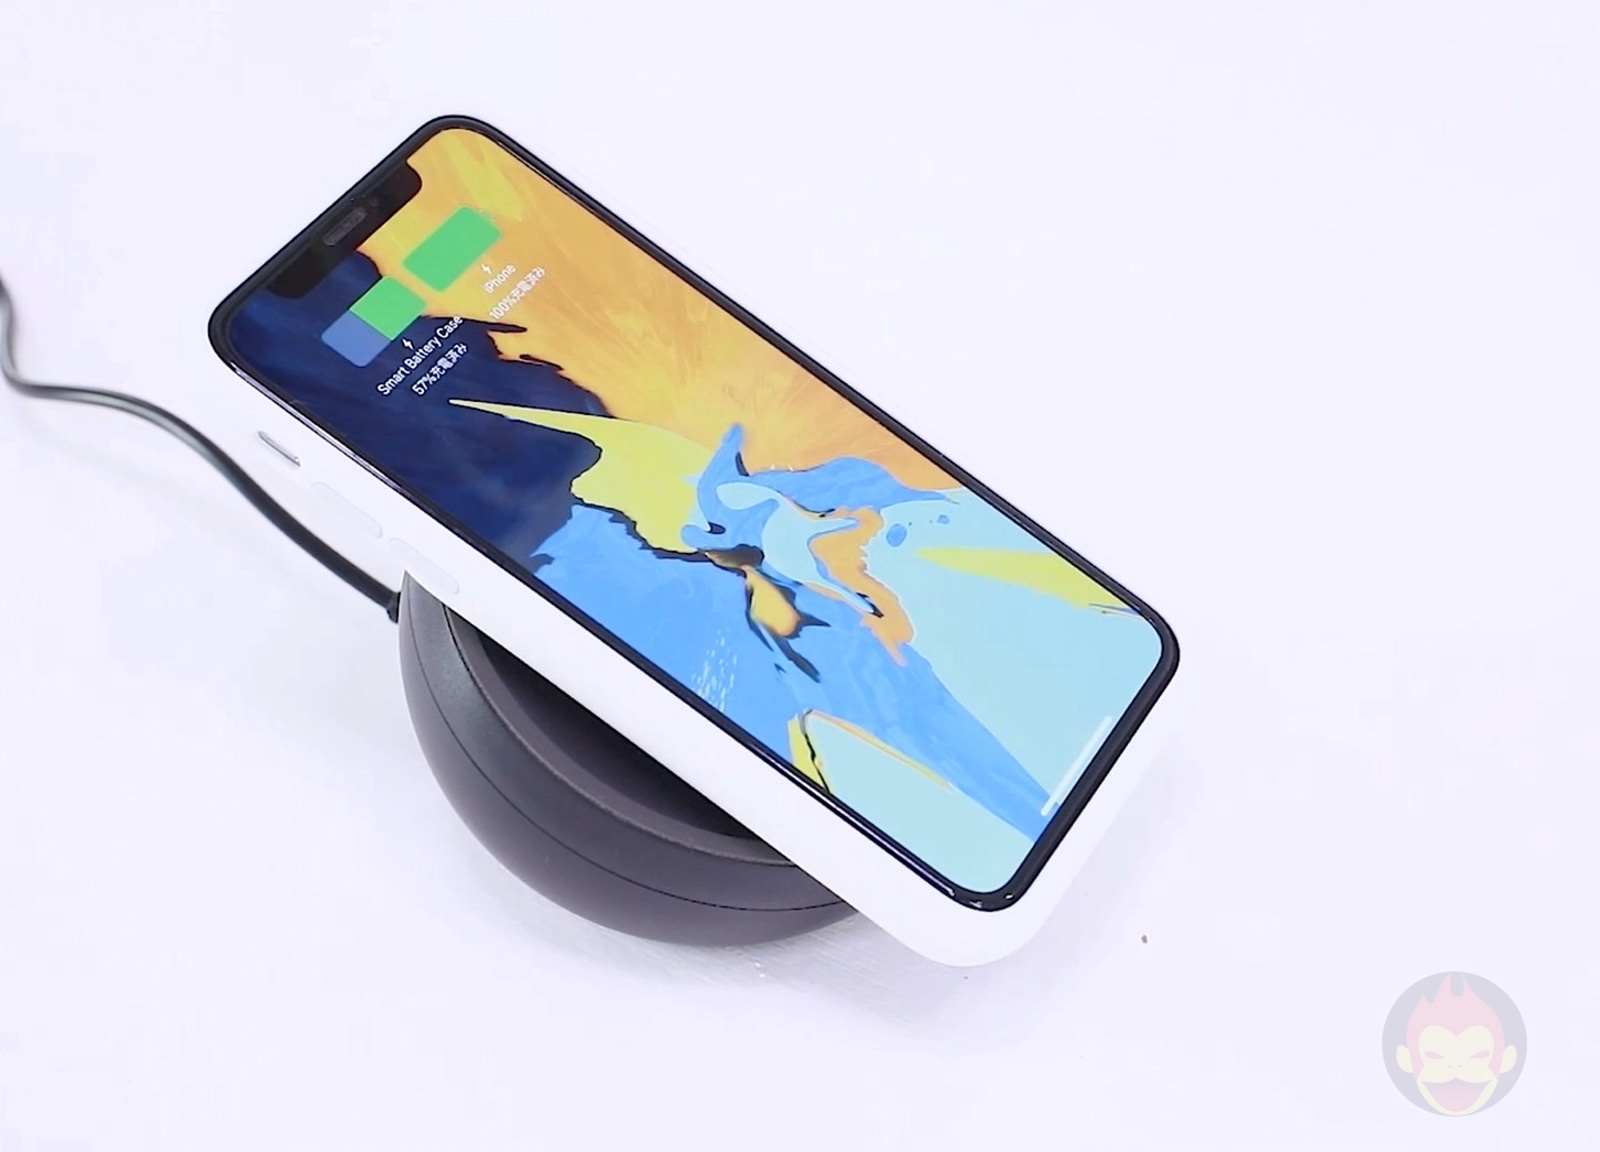 Freedy-Wireless-Charger-Review-01.jpg